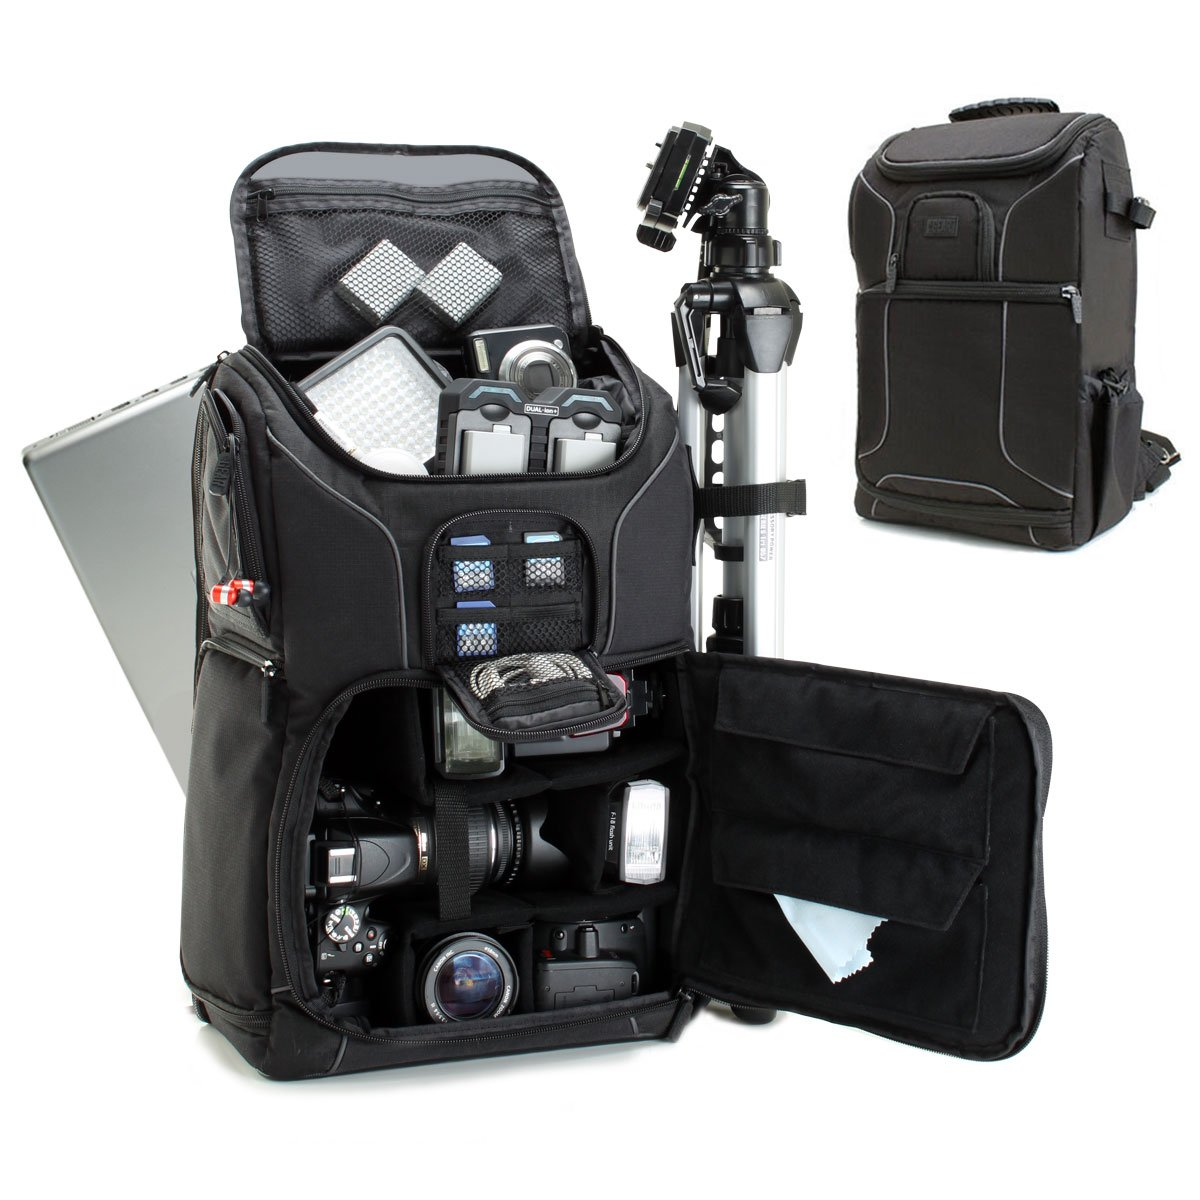 Digital SLR Camera Backpack with 15.6'' Laptop Compartment by USA Gear features Padded Custom Dividers, Tripod Holder, Rain Cover and Storage for DSLR Cameras by Nikon, Canon, Sony, Pentax & More